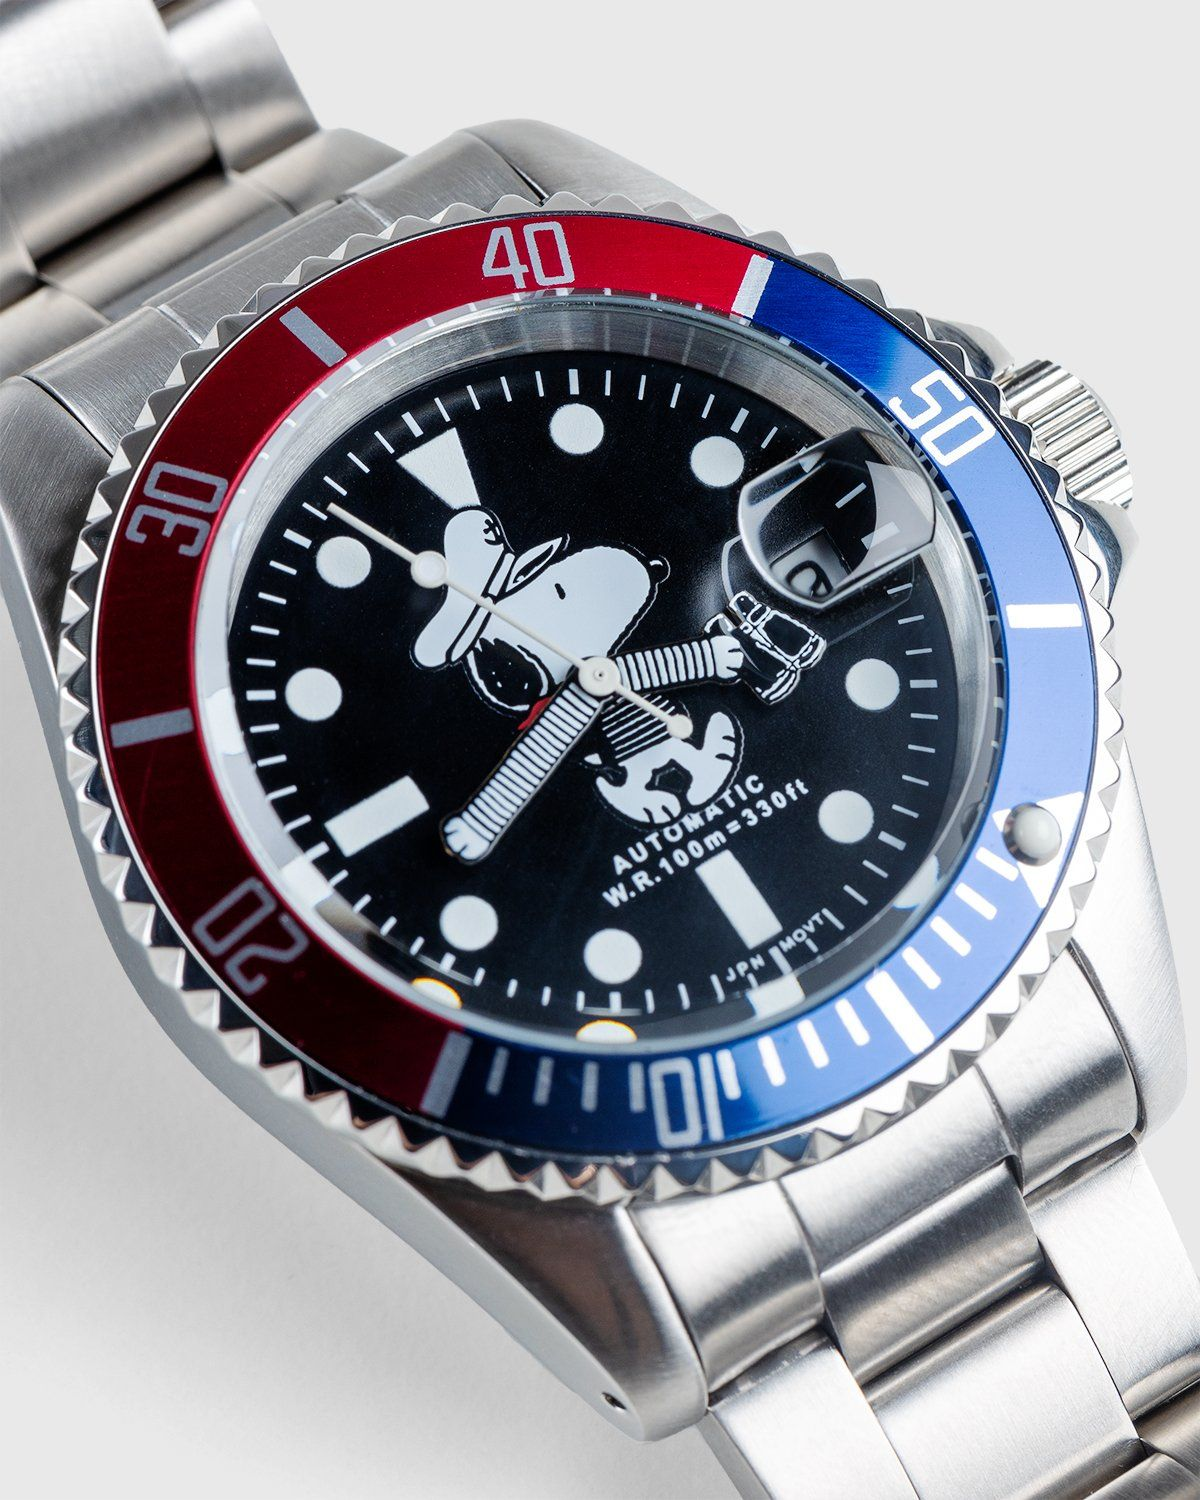 Vague Watch Co. — Sailing Snoopy Watch Grey - Image 3